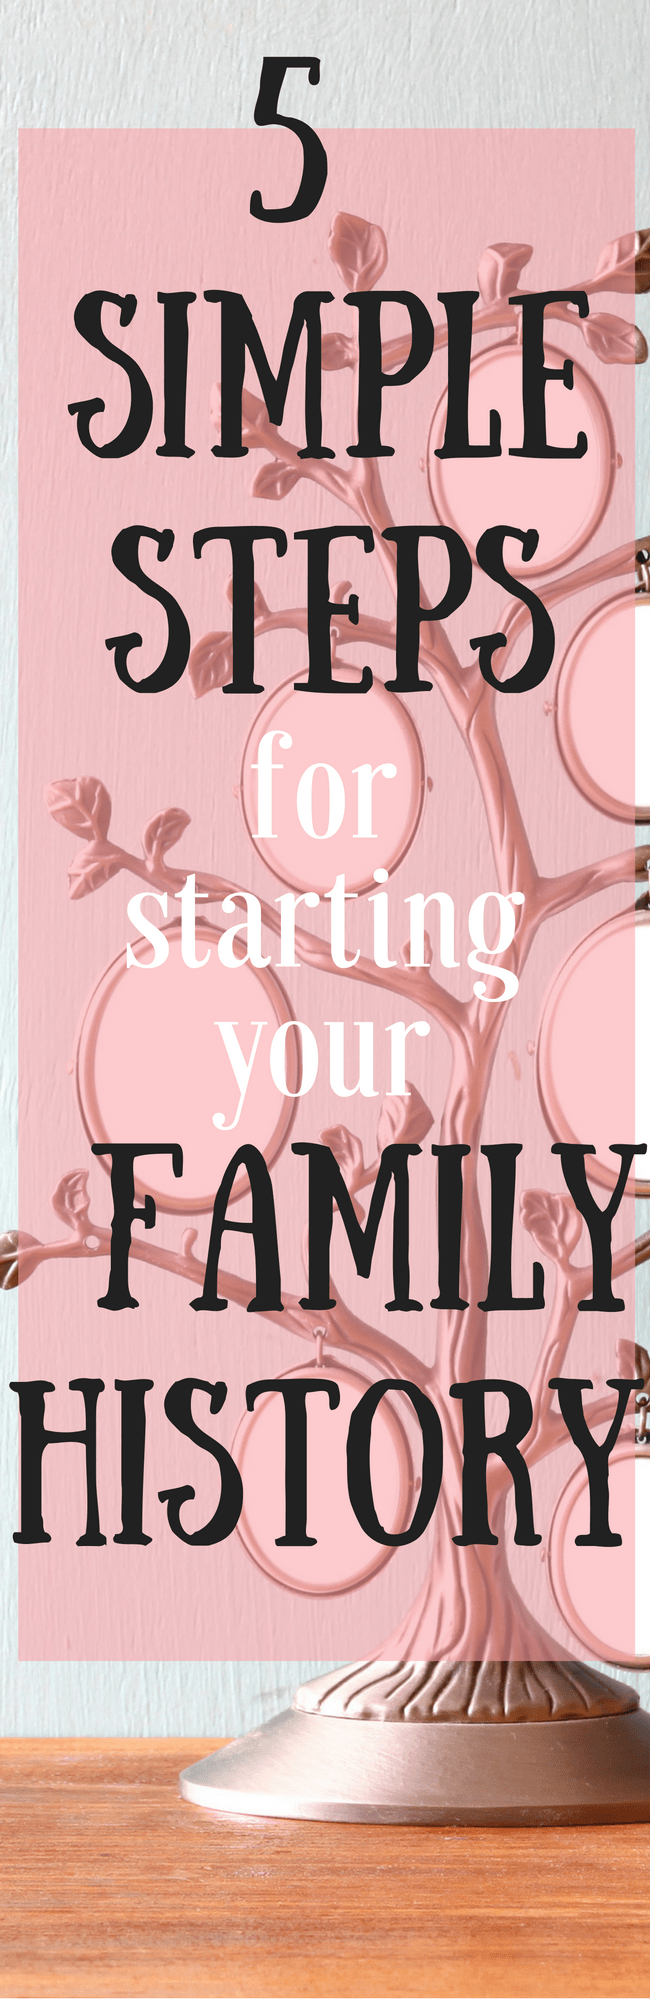 5 Simples steps for starting your family history - doing your Geneology research can really open up the doors of your ancestry. Here are a few tools for helping you get your family trees ready to go! via @clarkscondensed